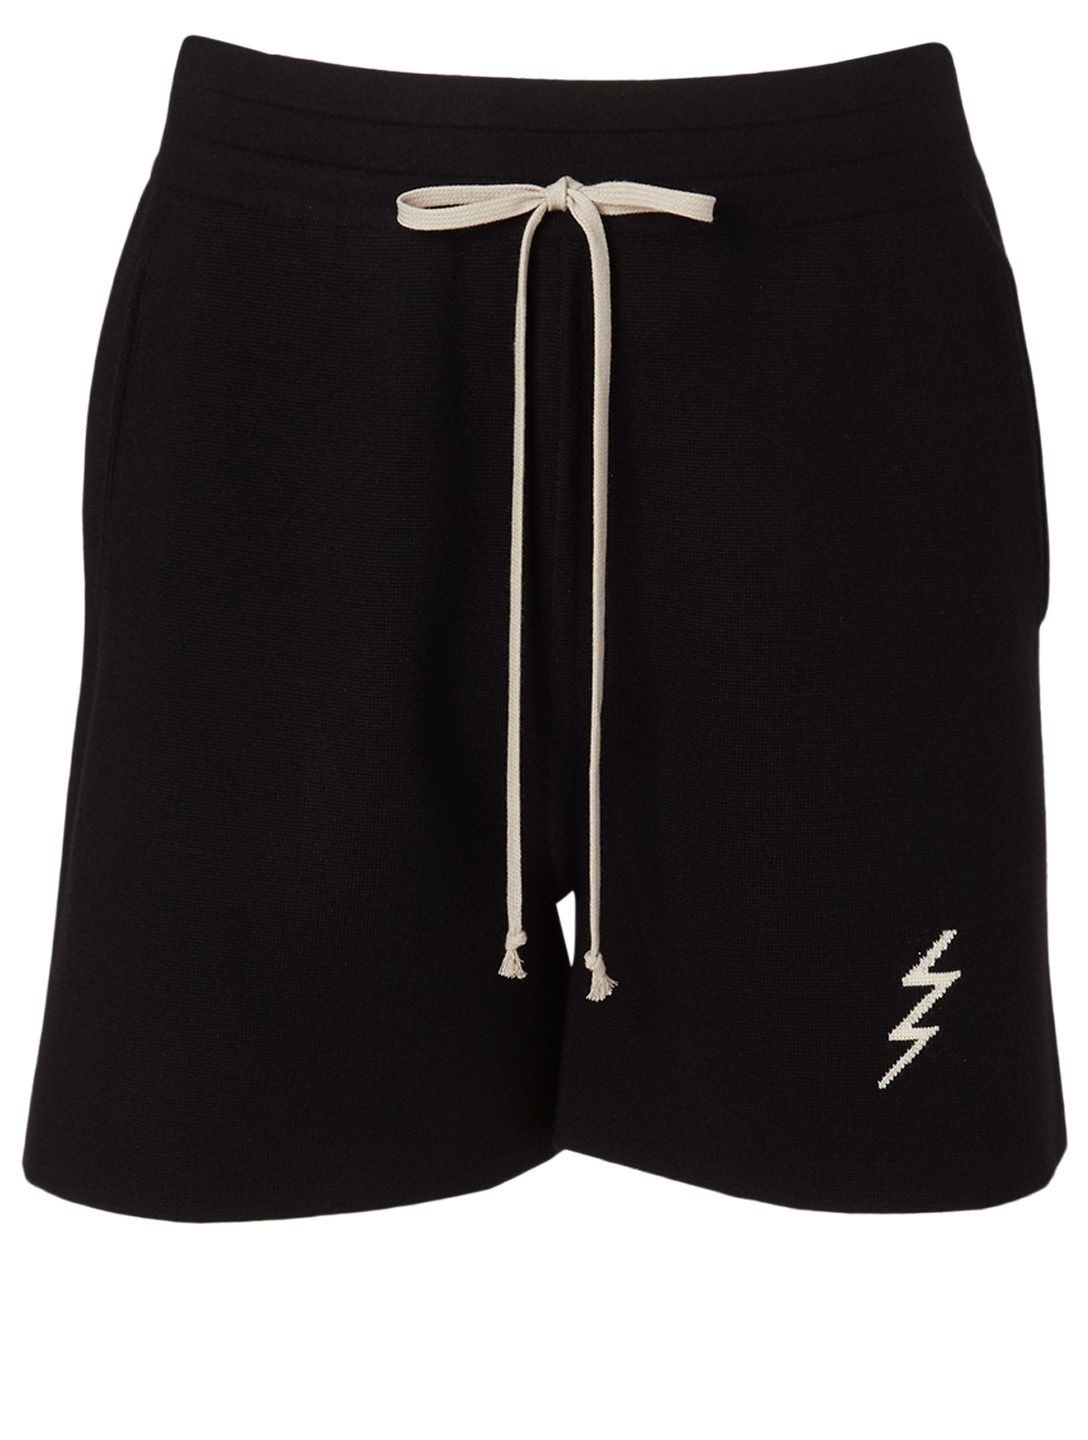 RICK OWENS Cashmere Bolt Shorts Men's Black